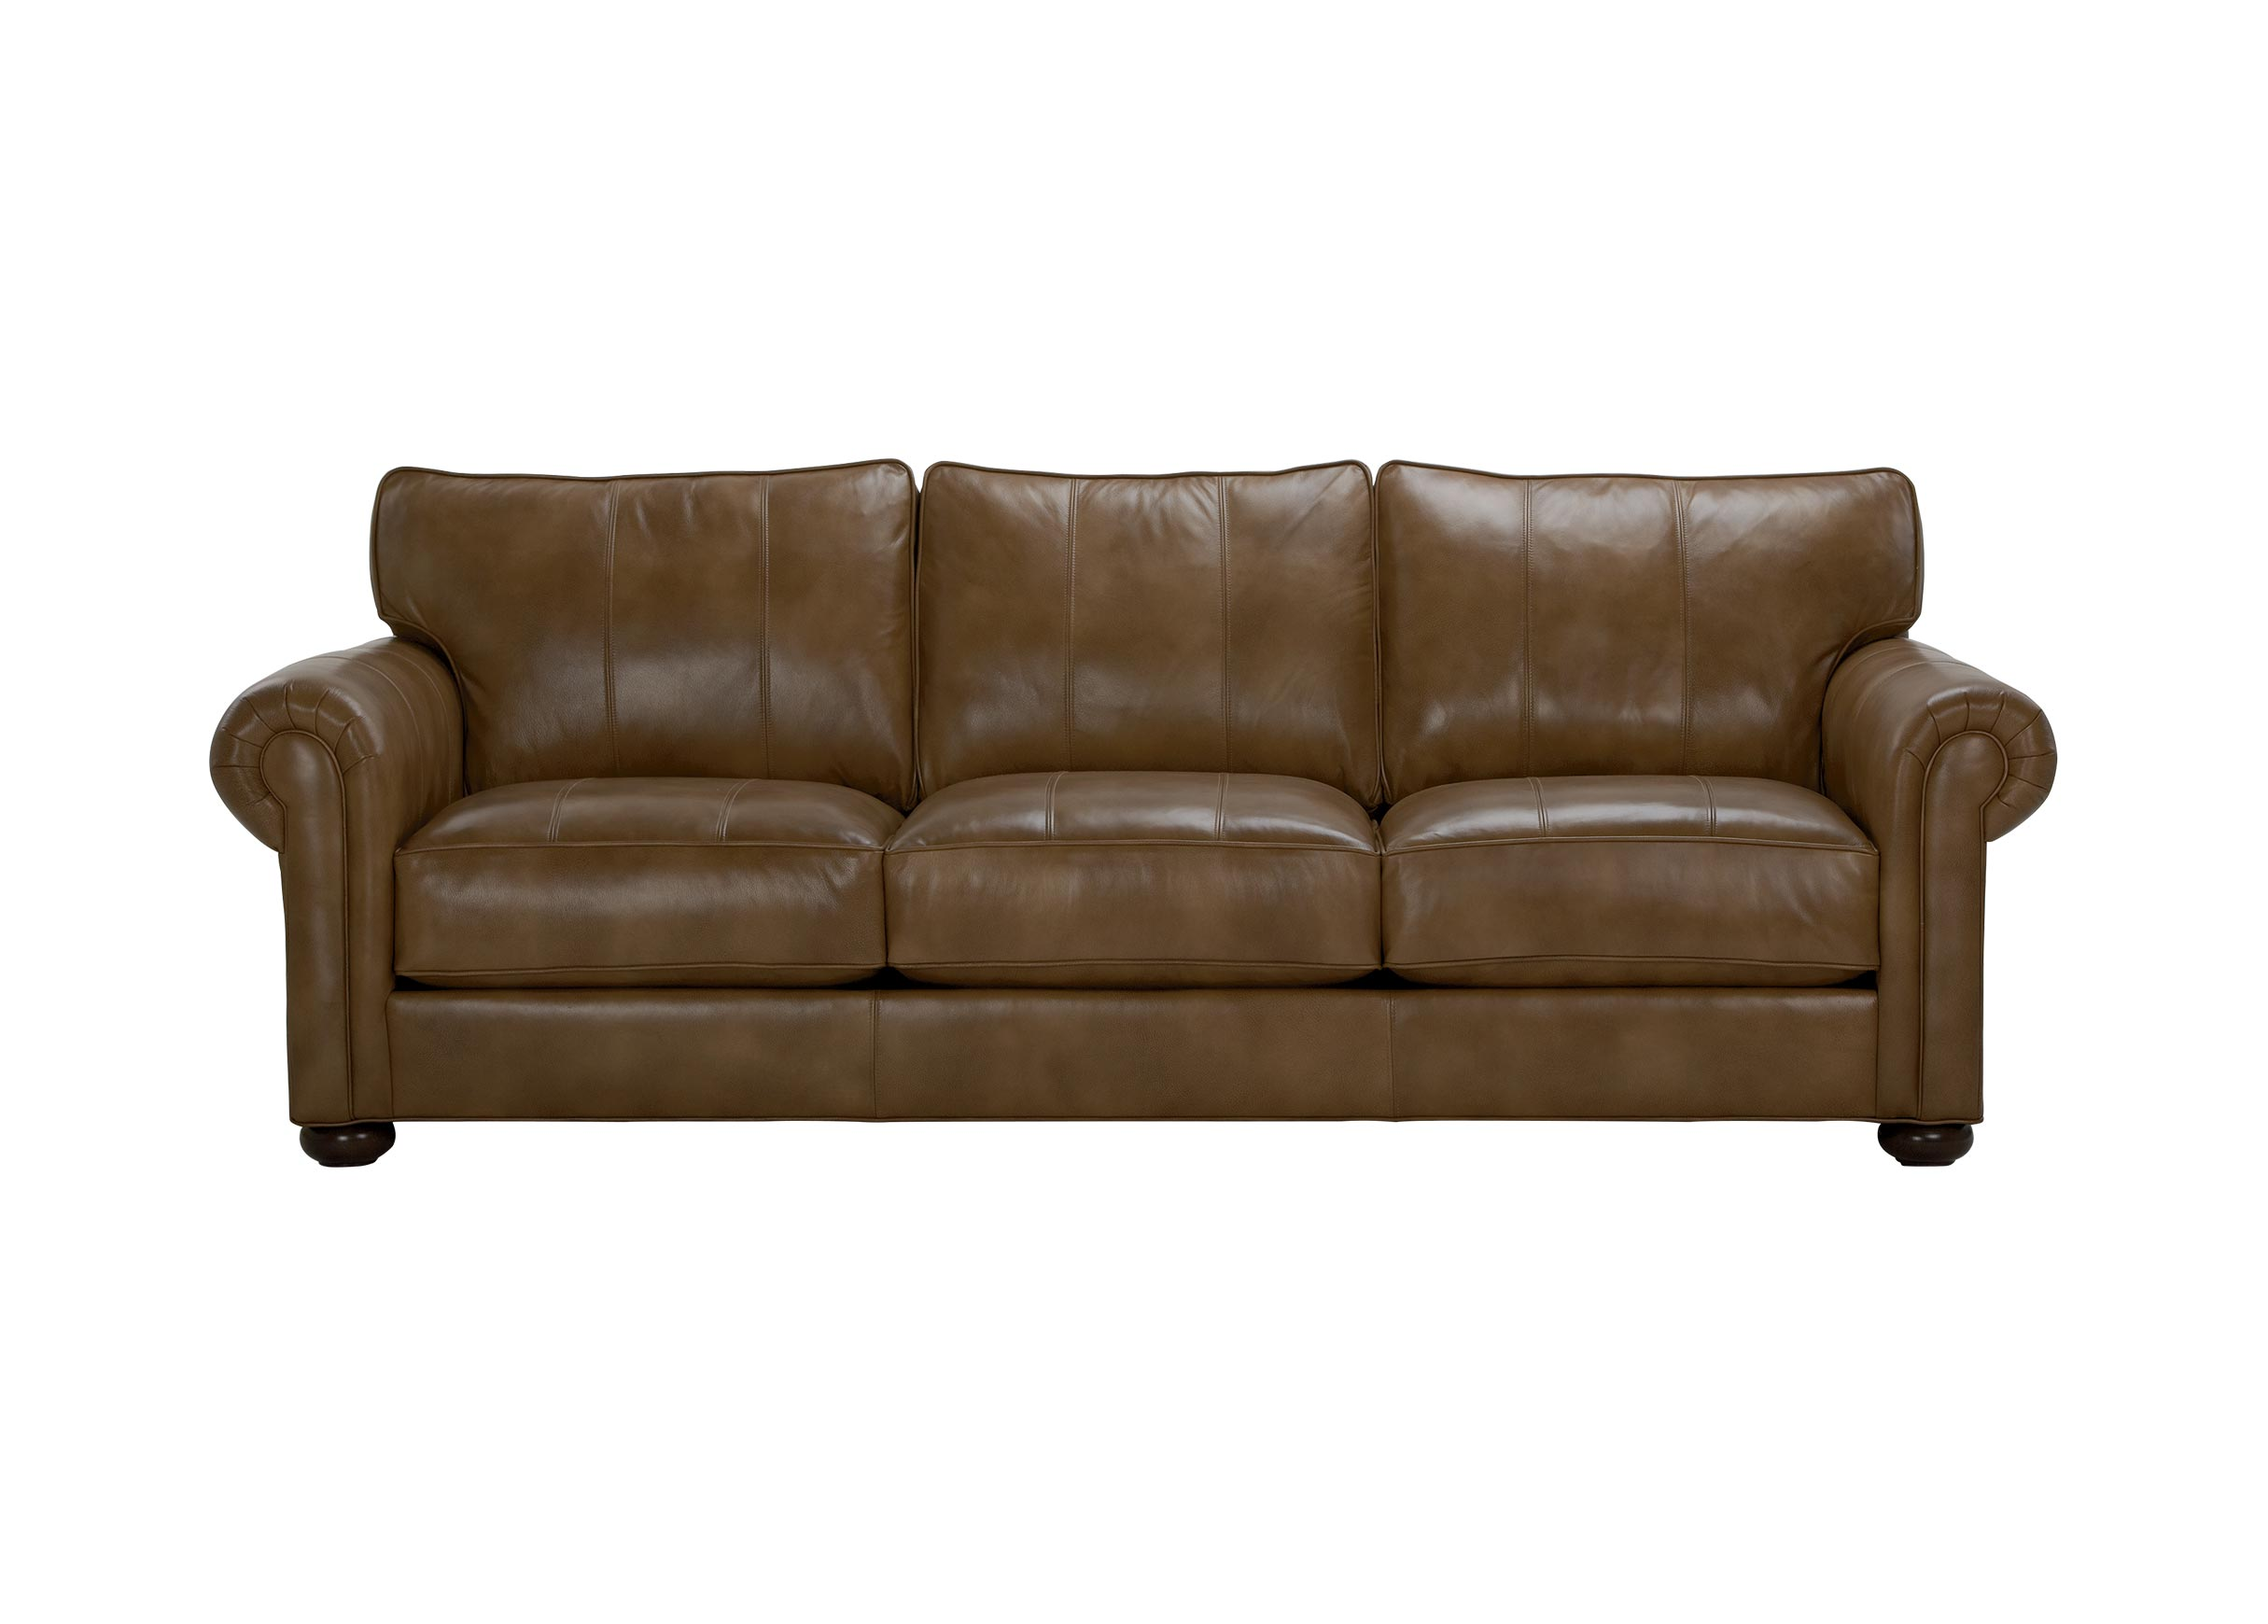 Modular Sofa Gumtree Perth Studio9 Studio9 21 Luxury New Sectional Sofa